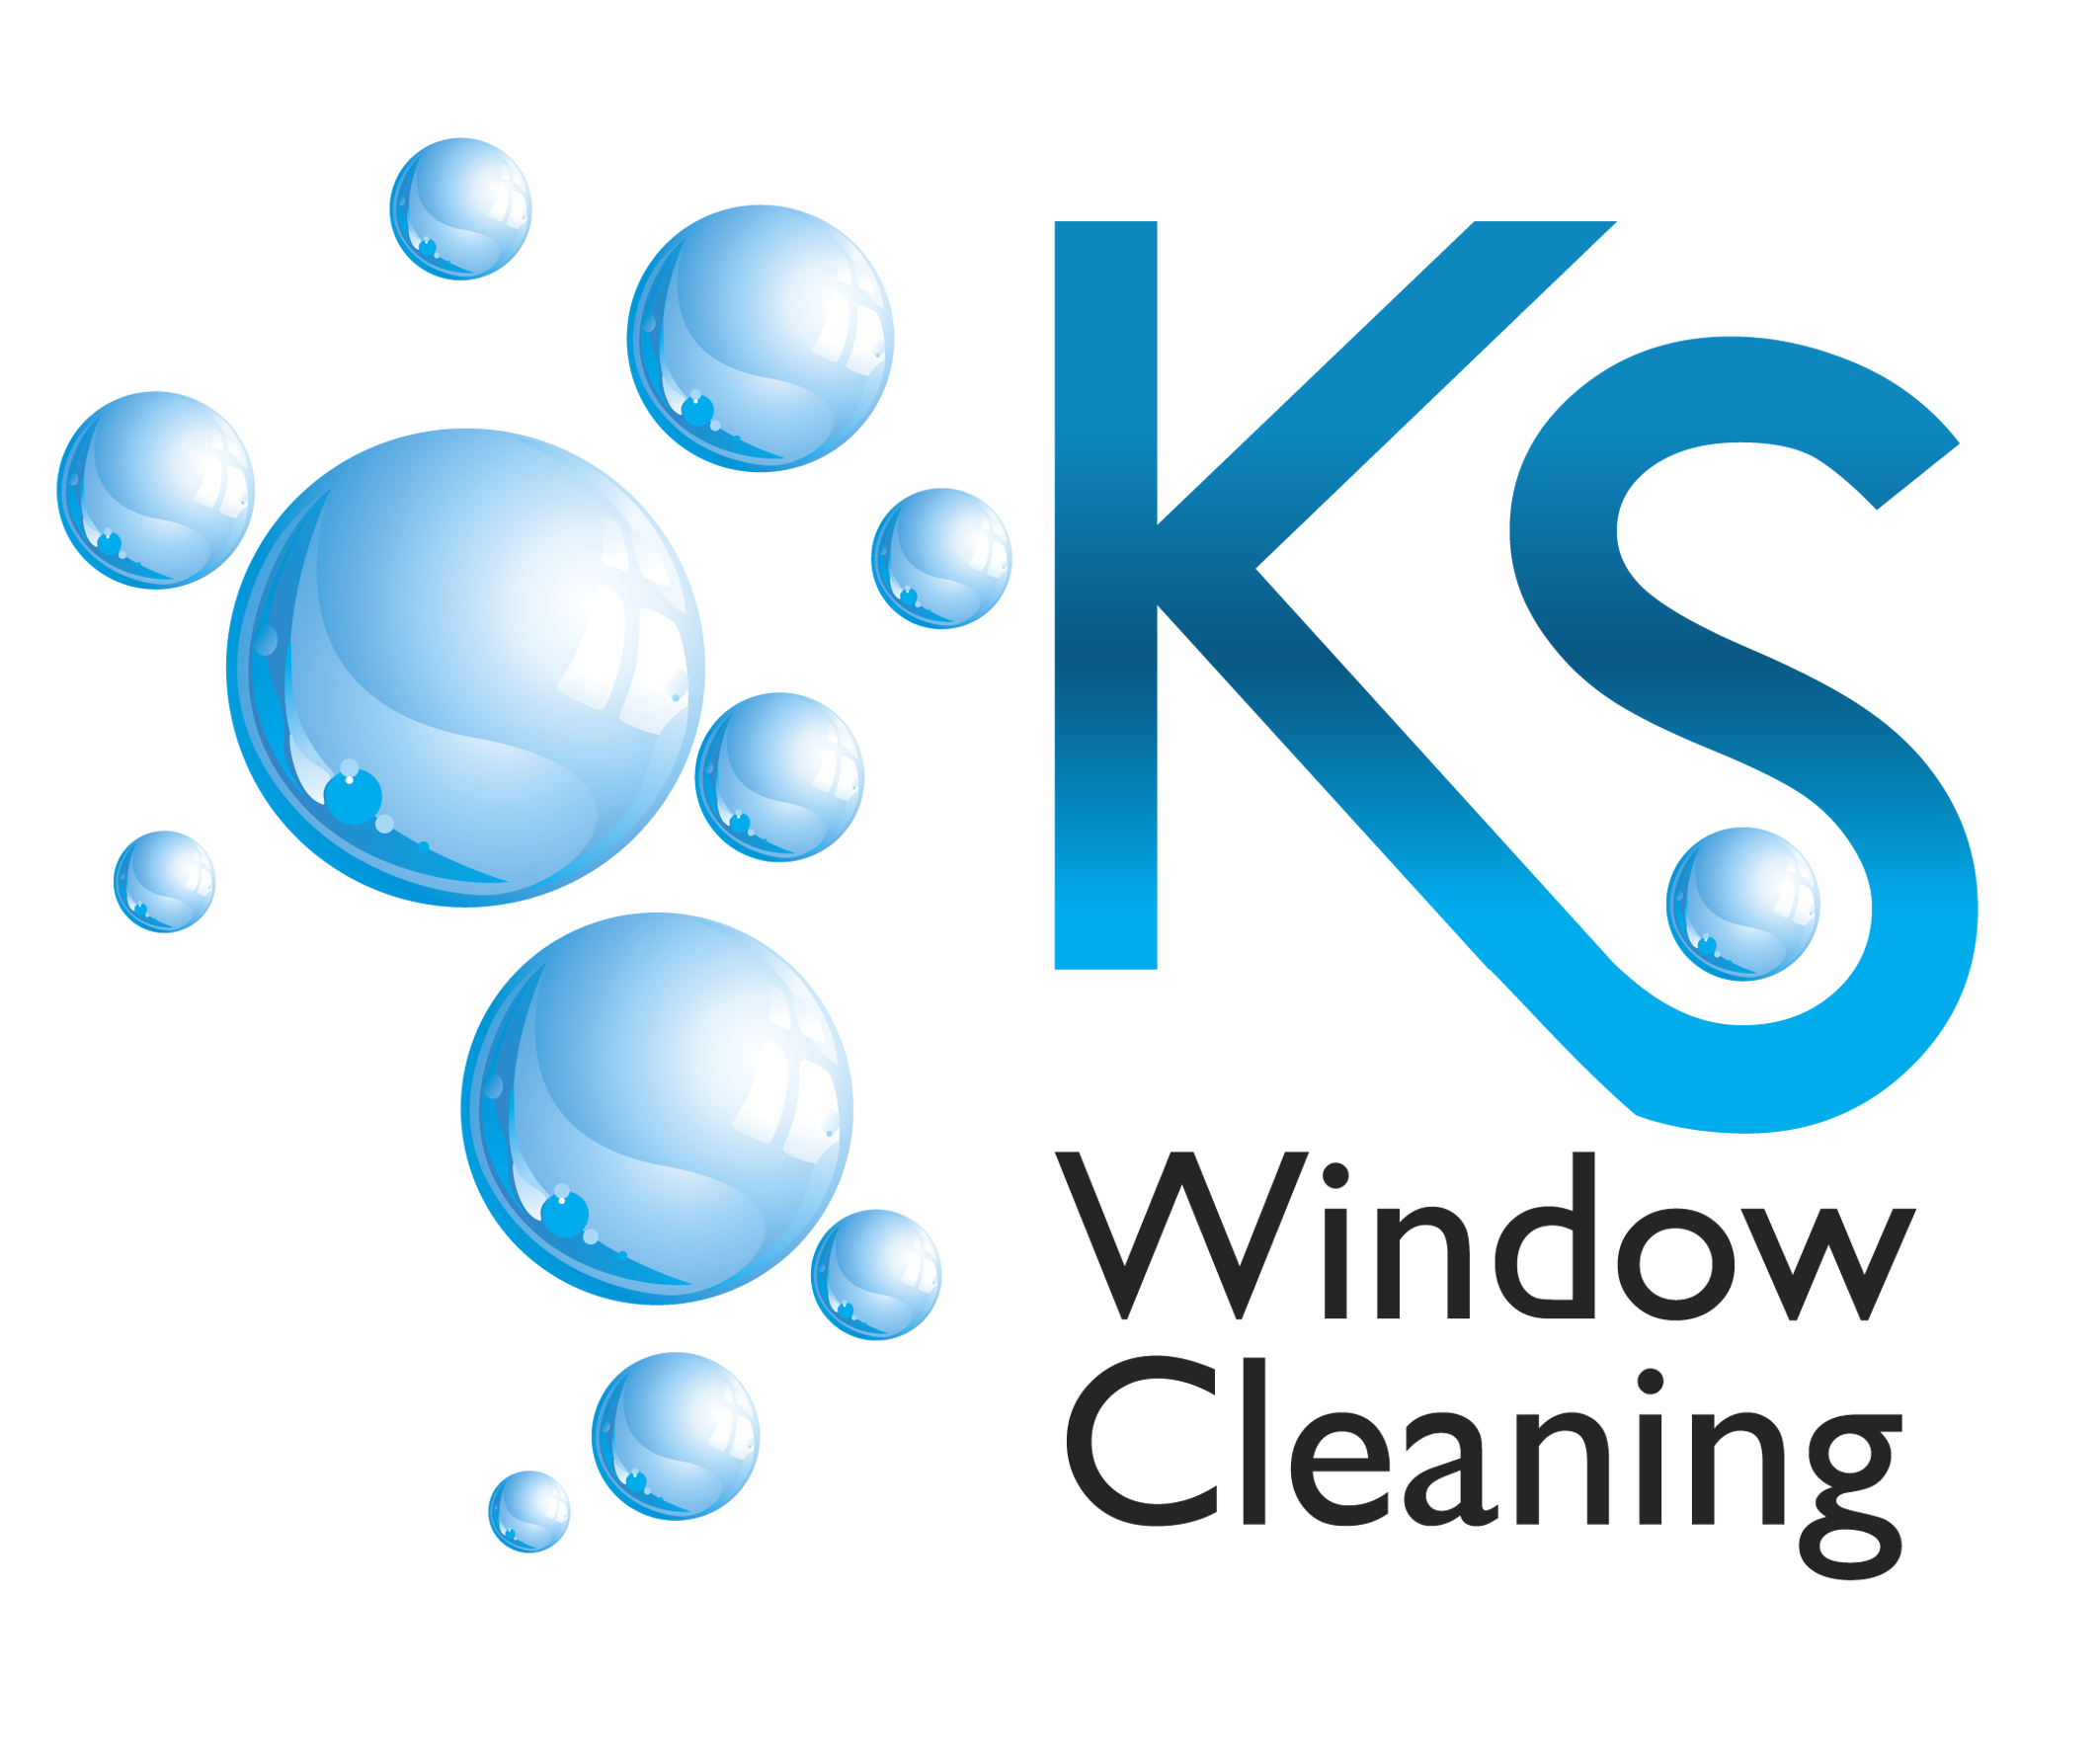 window cleaning pictures onvacations wallpaper window cleaning logos images window cleaning logo template